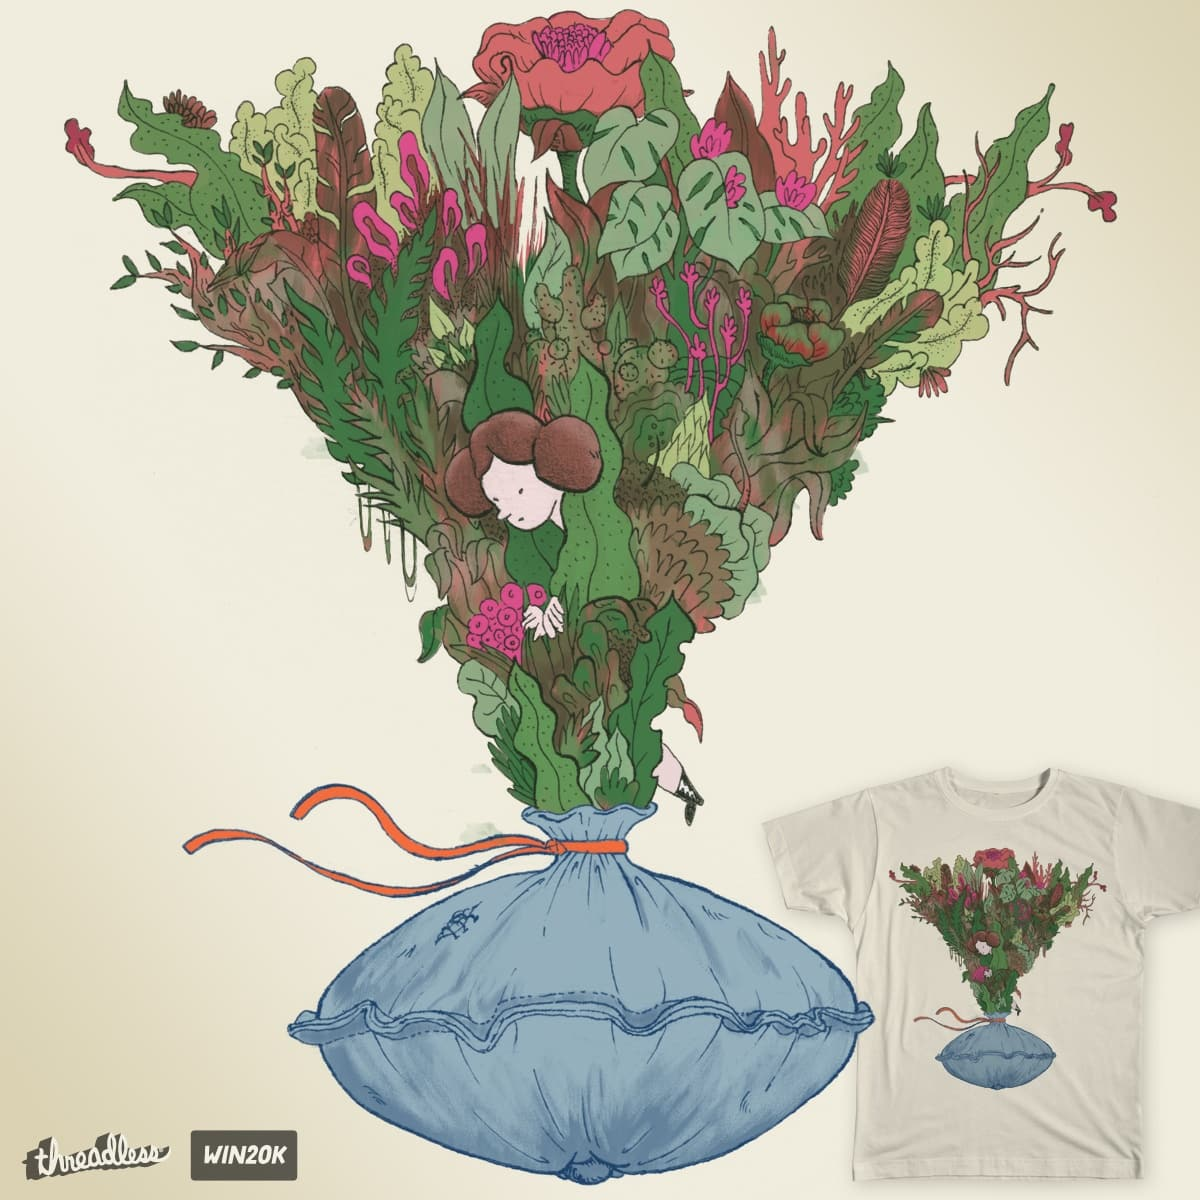 Shuttle Forest by chastinet on Threadless